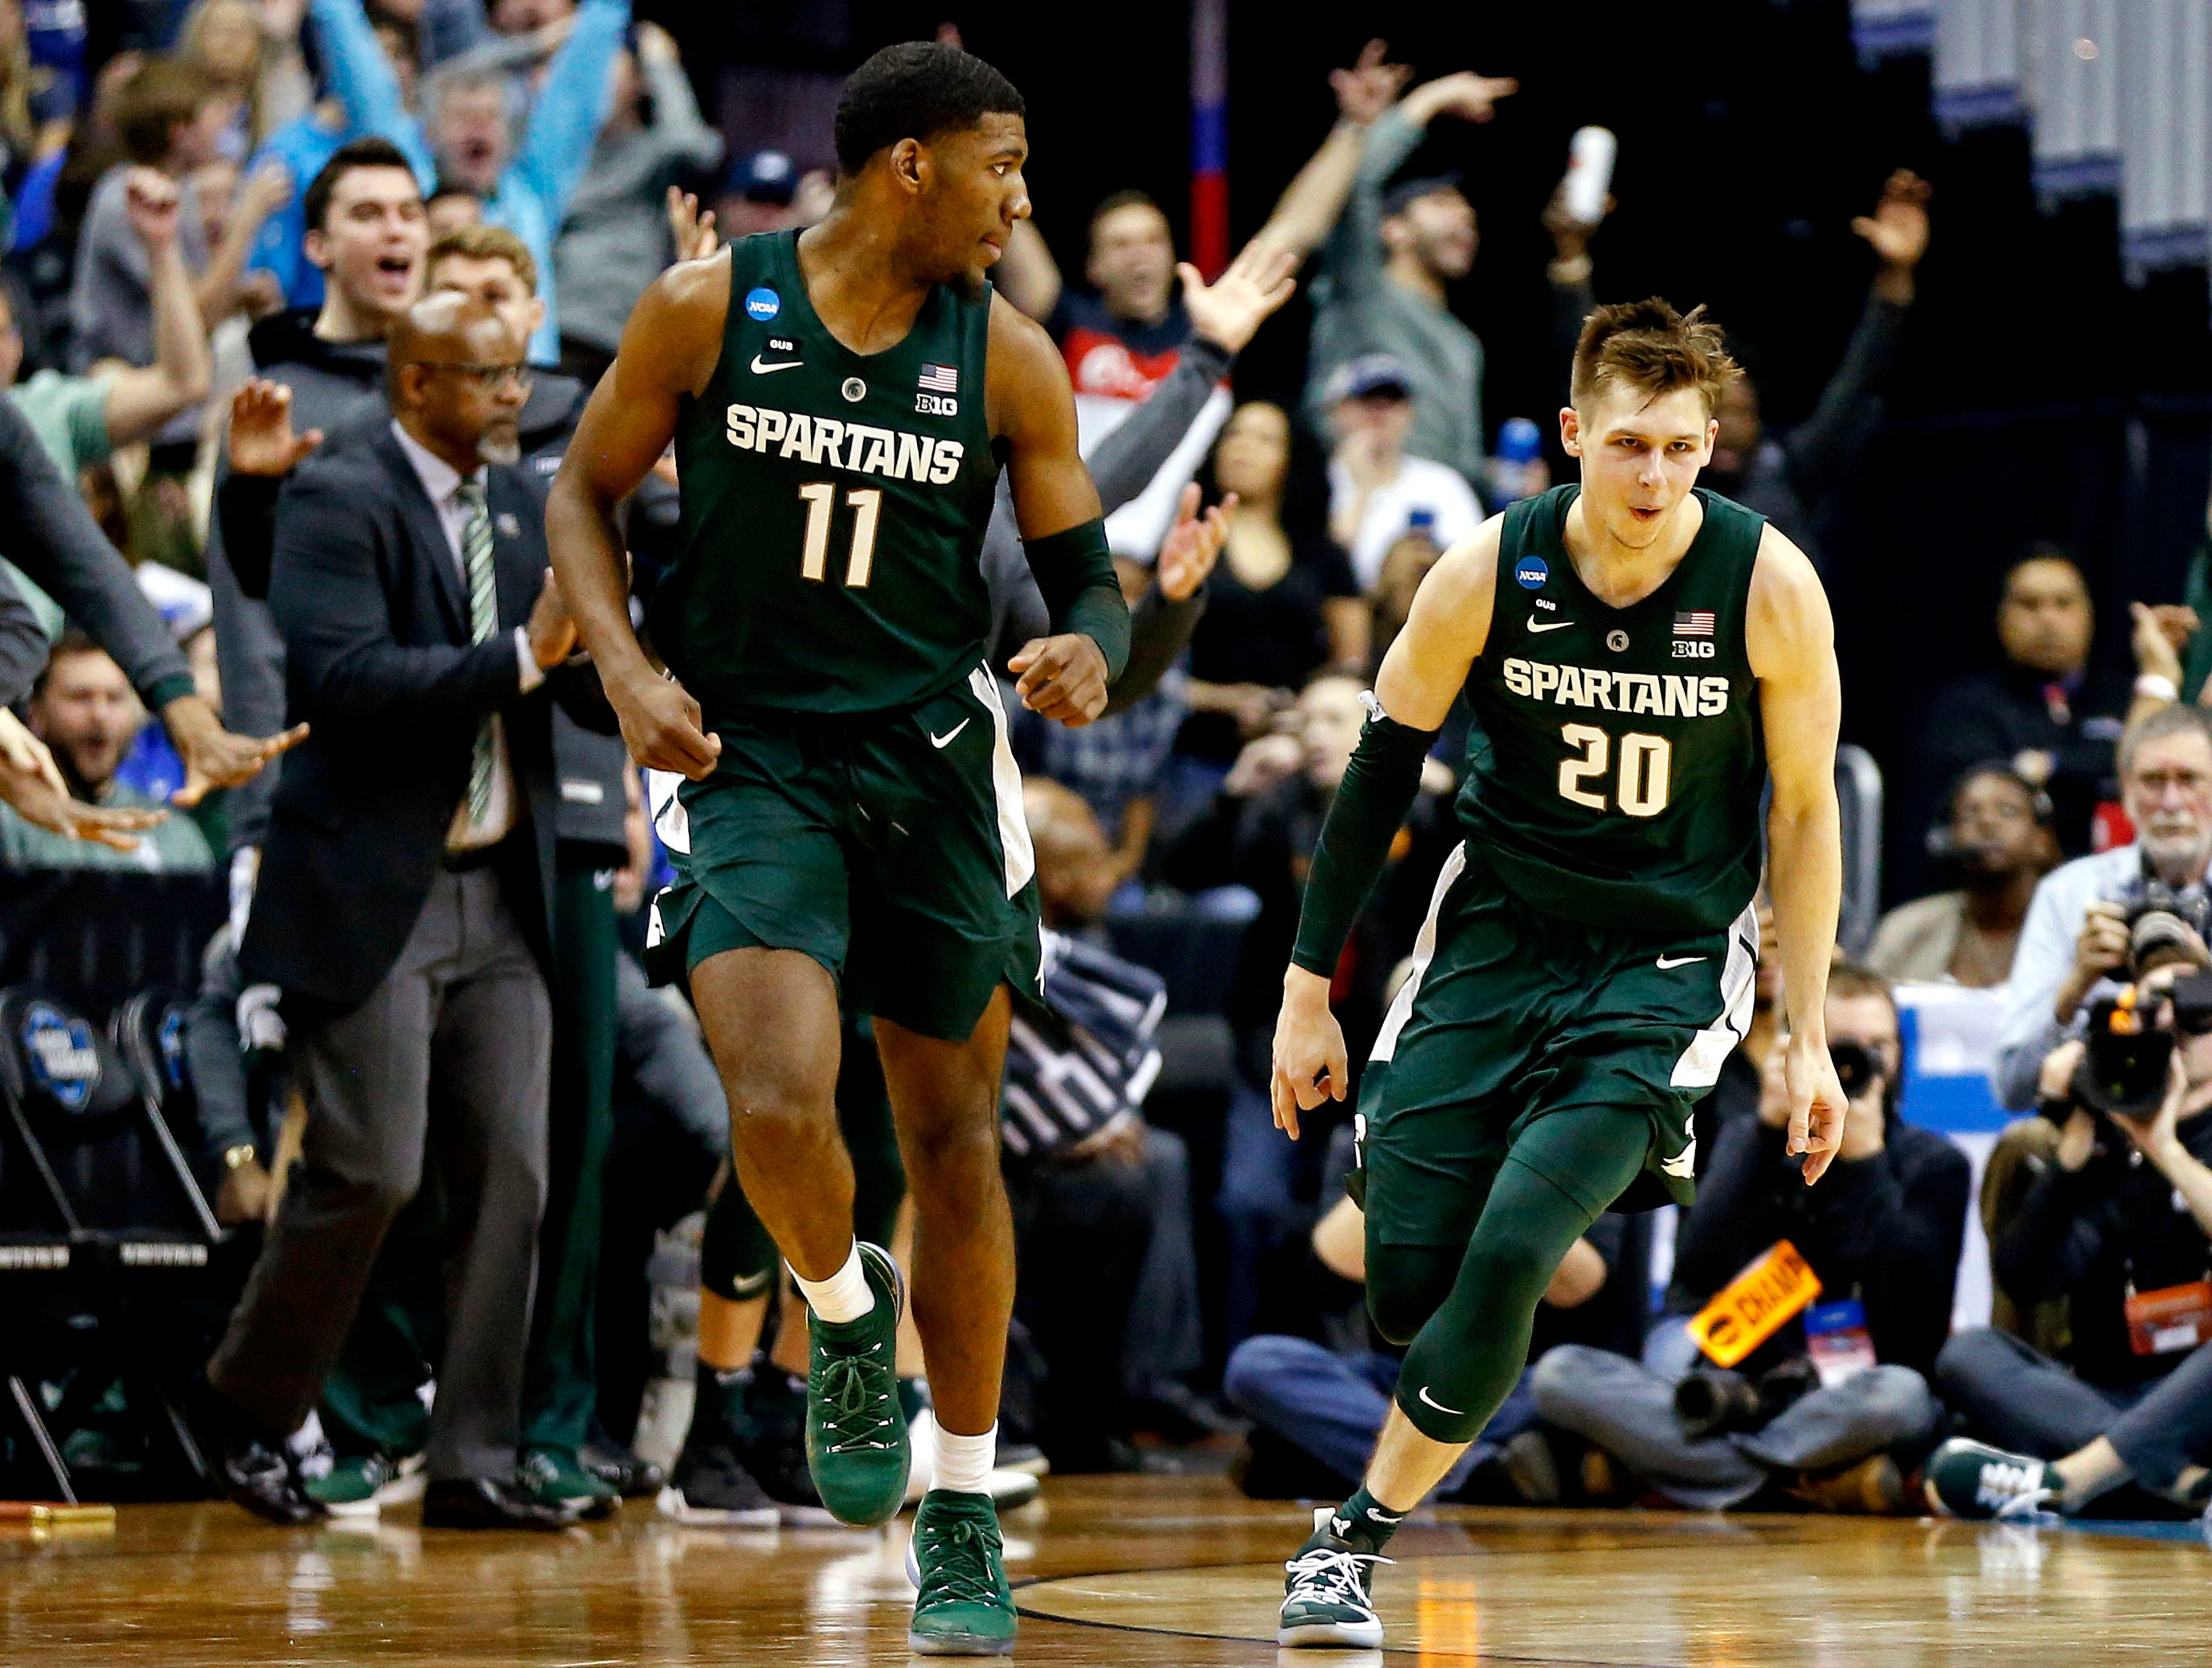 Mar 31, 2019; Washington, DC, USA; Michigan State Spartans guard Matt McQuaid (20) reacts after a play during the second half against the Duke Blue Devils in the championship game of the east regional of the 2019 NCAA Tournament at Capital One Arena. Mandatory Credit: Amber Searls-USA TODAY Sports